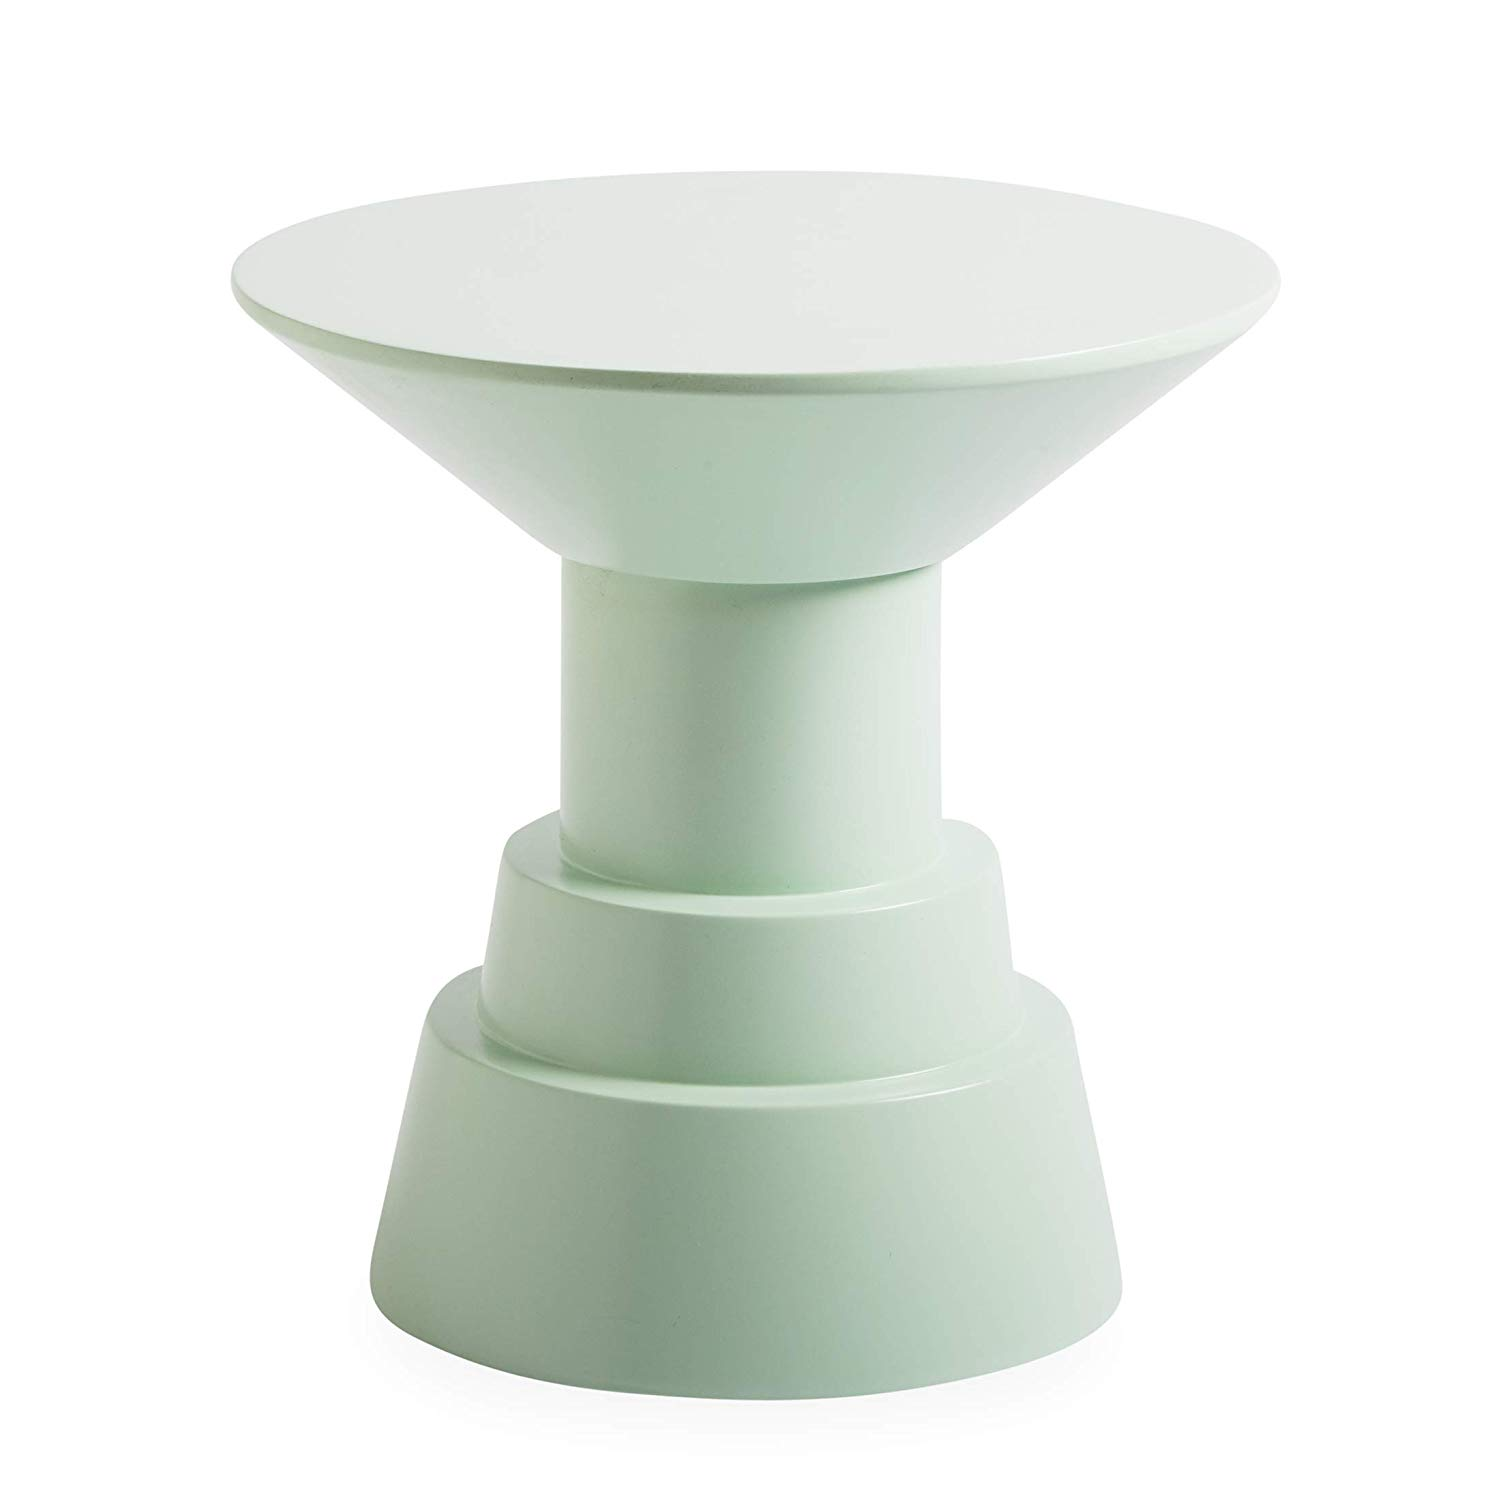 now house jonathan adler otto pedestal accent table modern mint kitchen dining small sofas for spaces large mosaic garden target coffee mini abacus lamp outdoor shoe storage chair